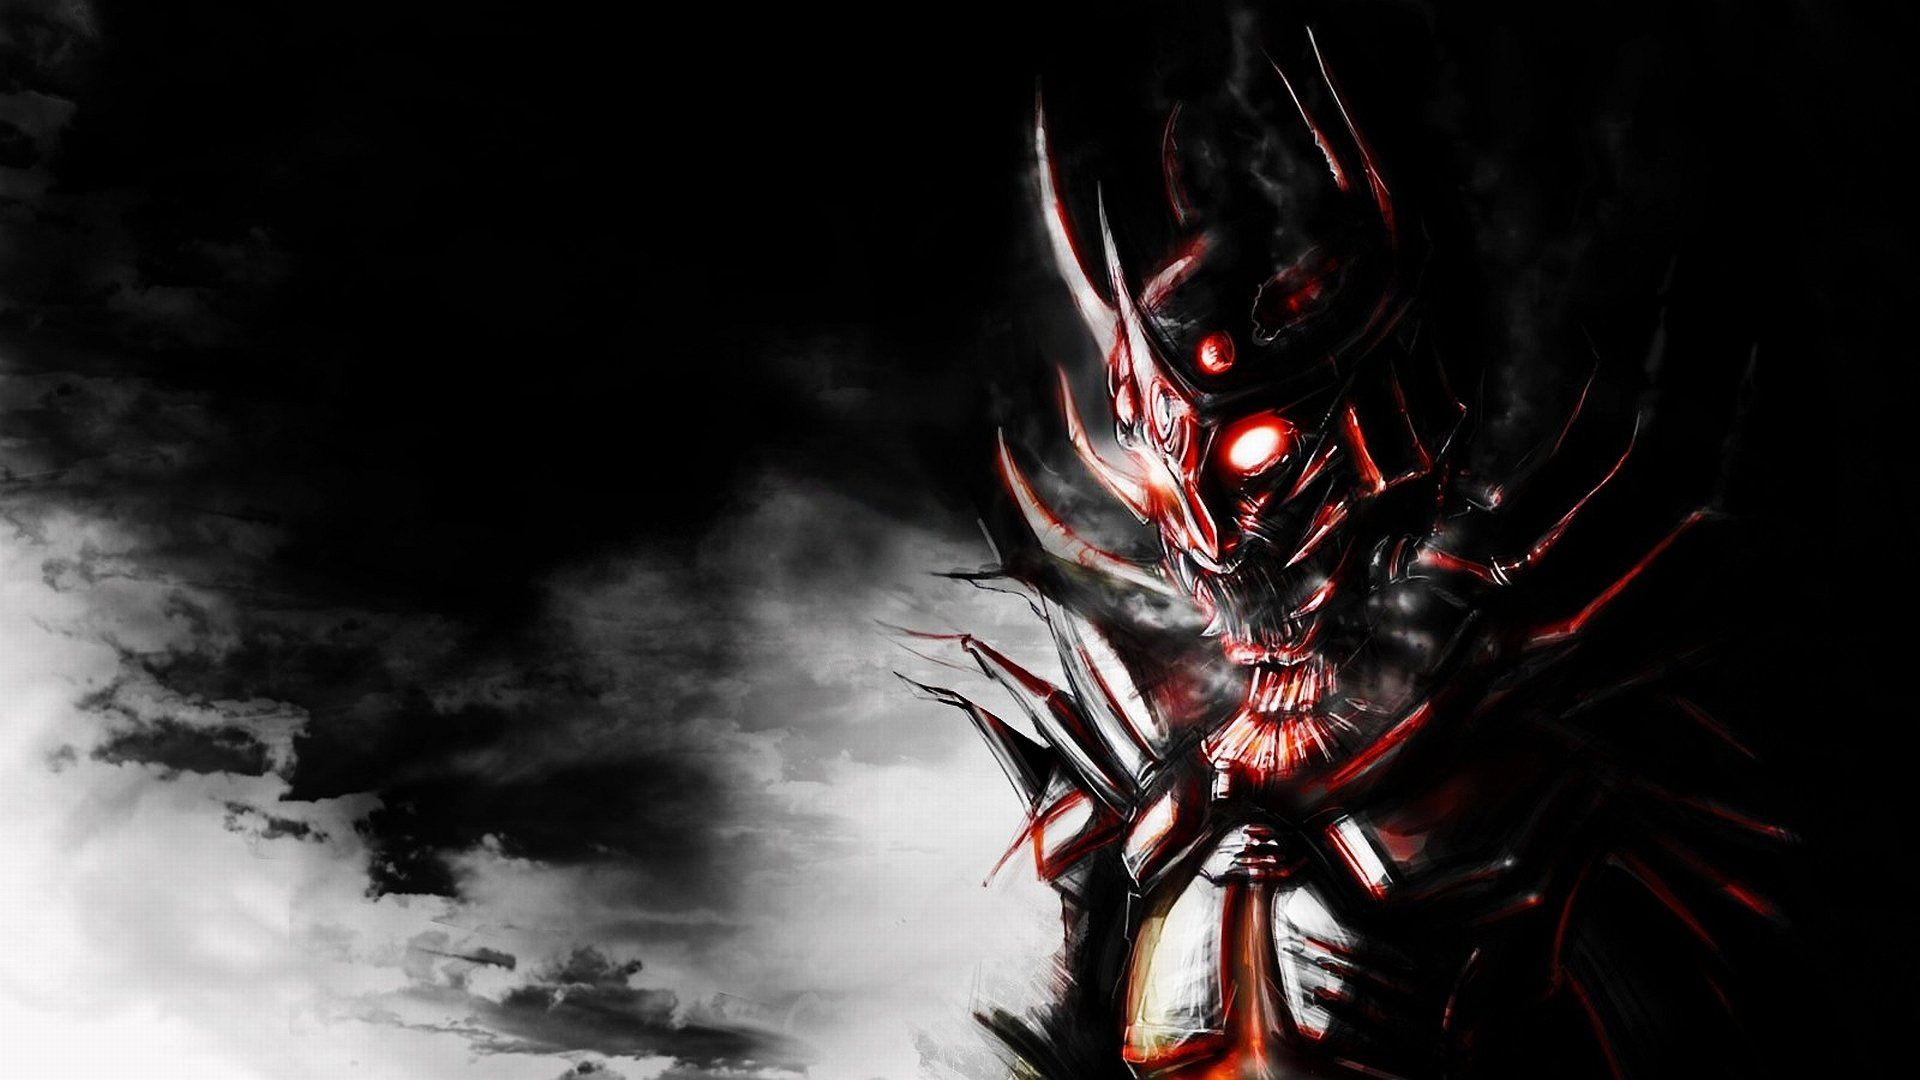 Scary Demon Wallpaper In 2019 Samurai Armor Daedric Armor